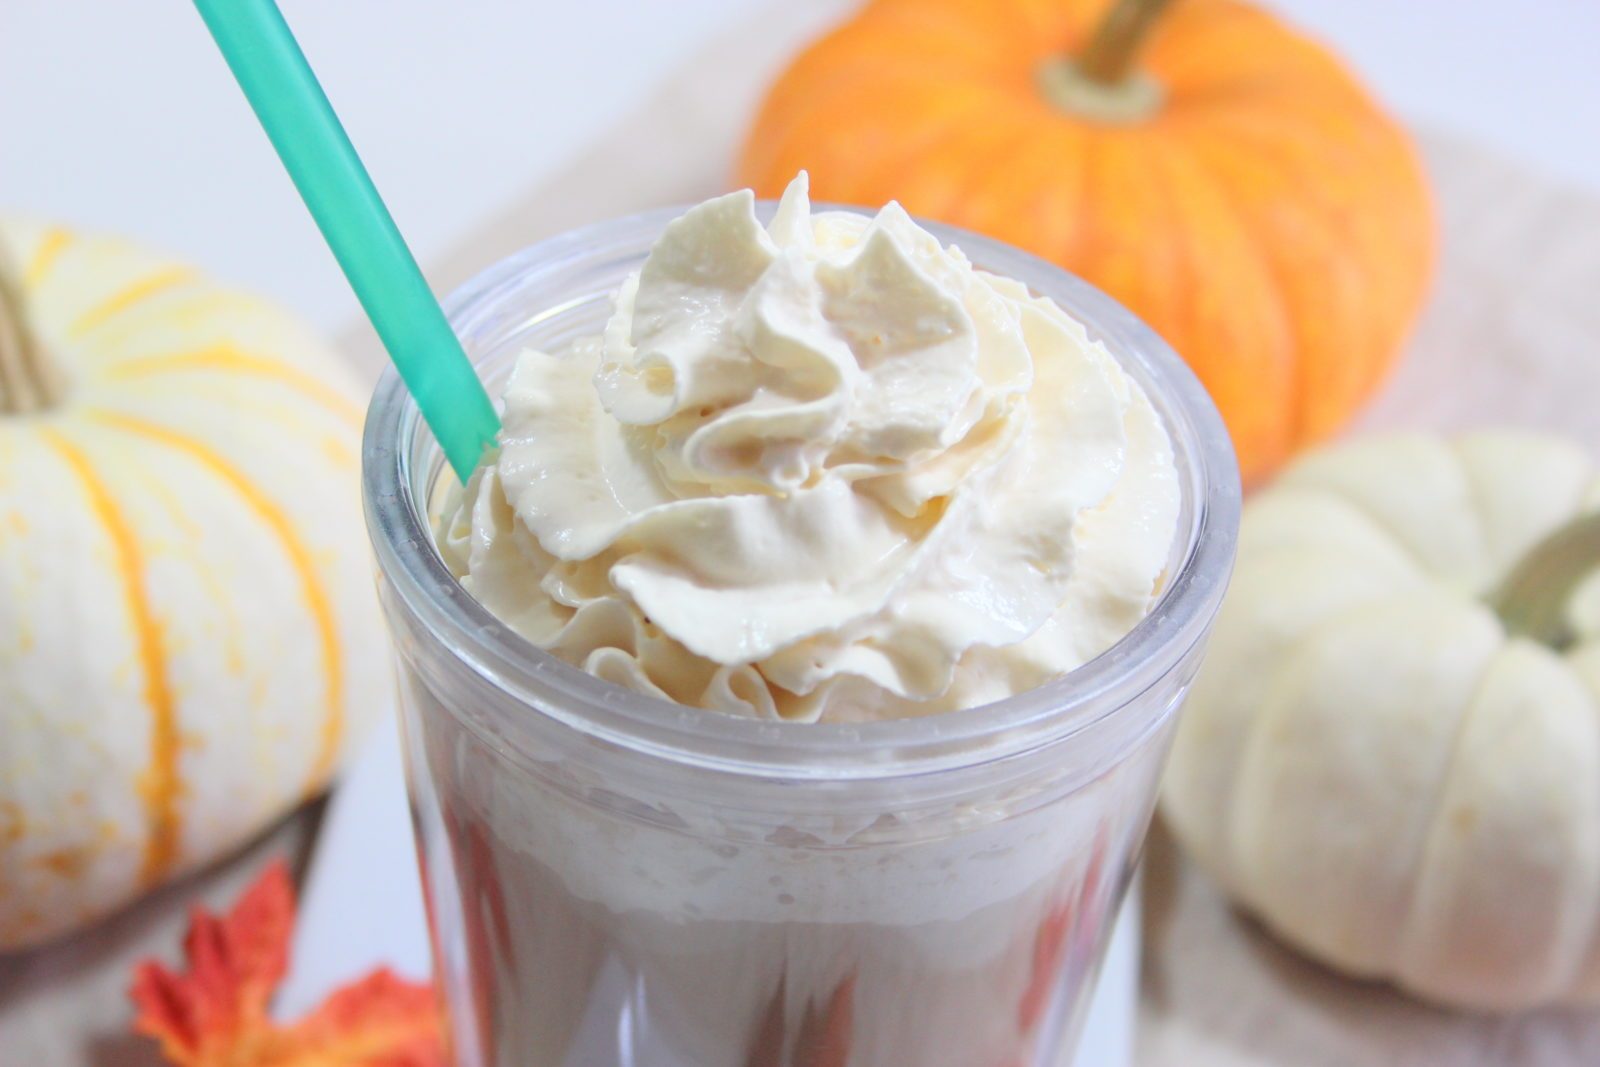 How to make Iced Pumpkin Spice Latte